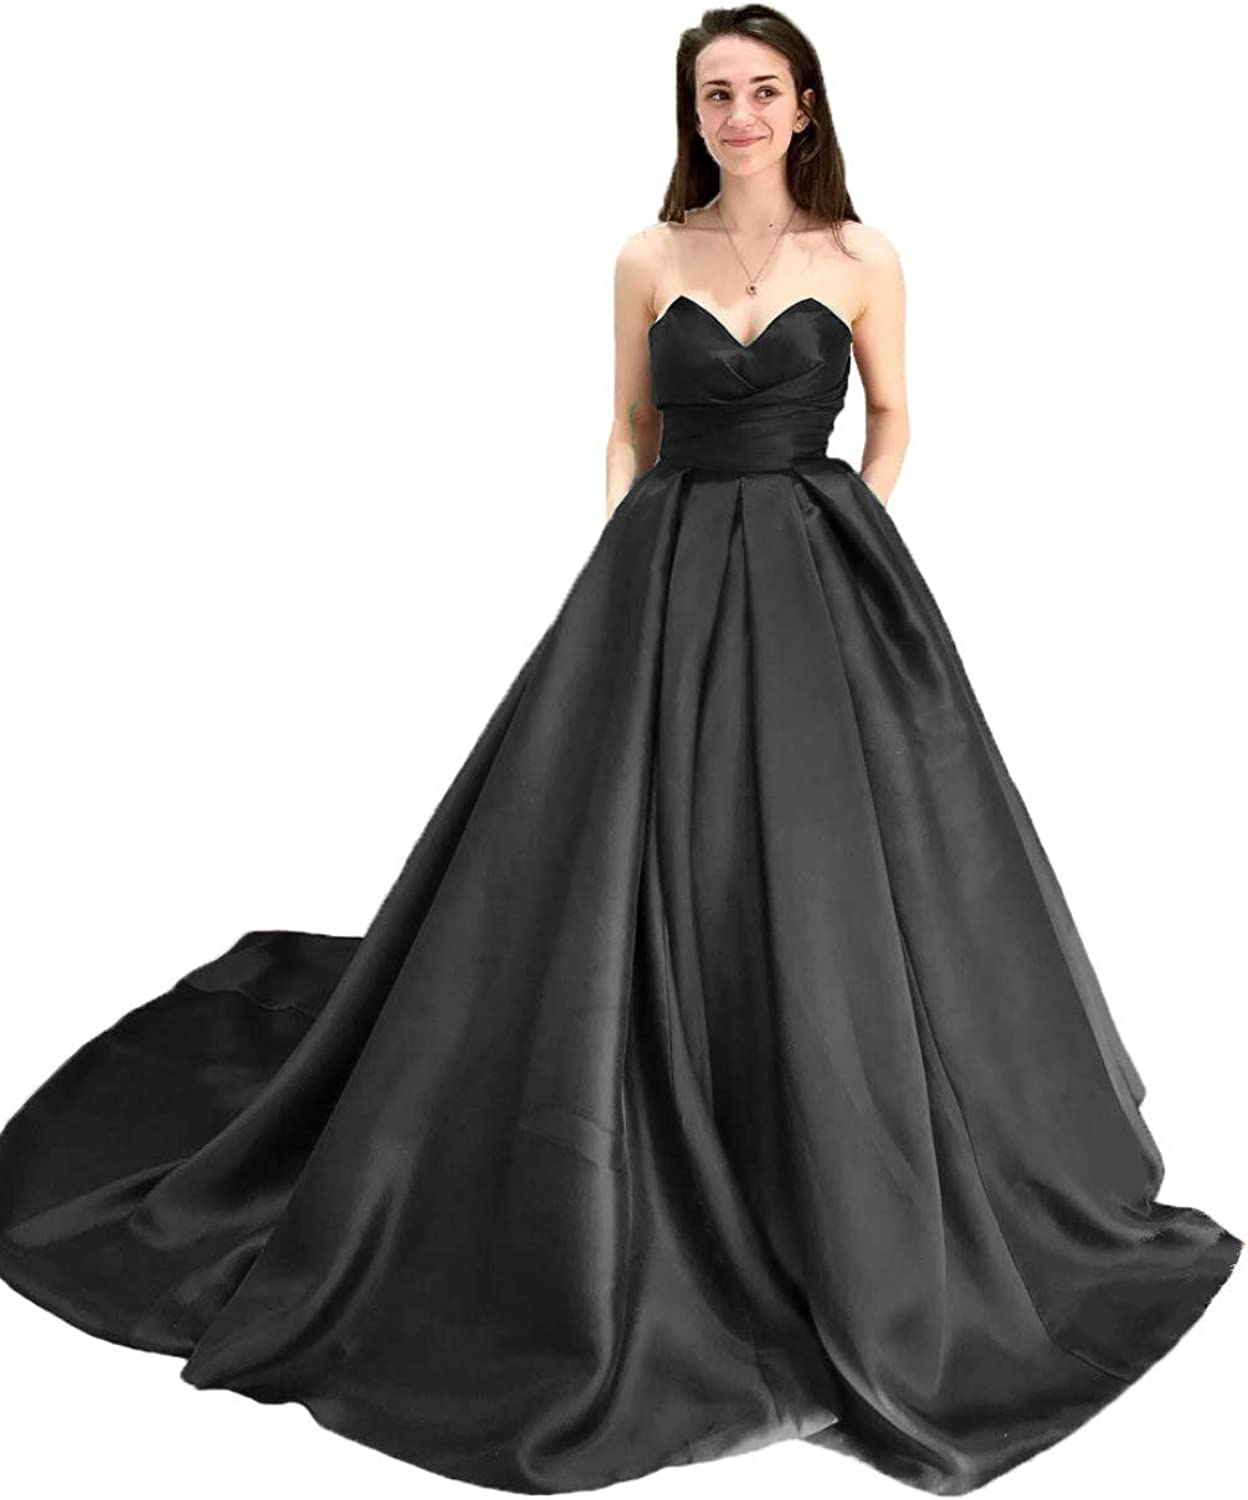 KaBuNi Women's Vintage Sweetheart Satin Prom Dresses Long Evening Dresses Ball Gown